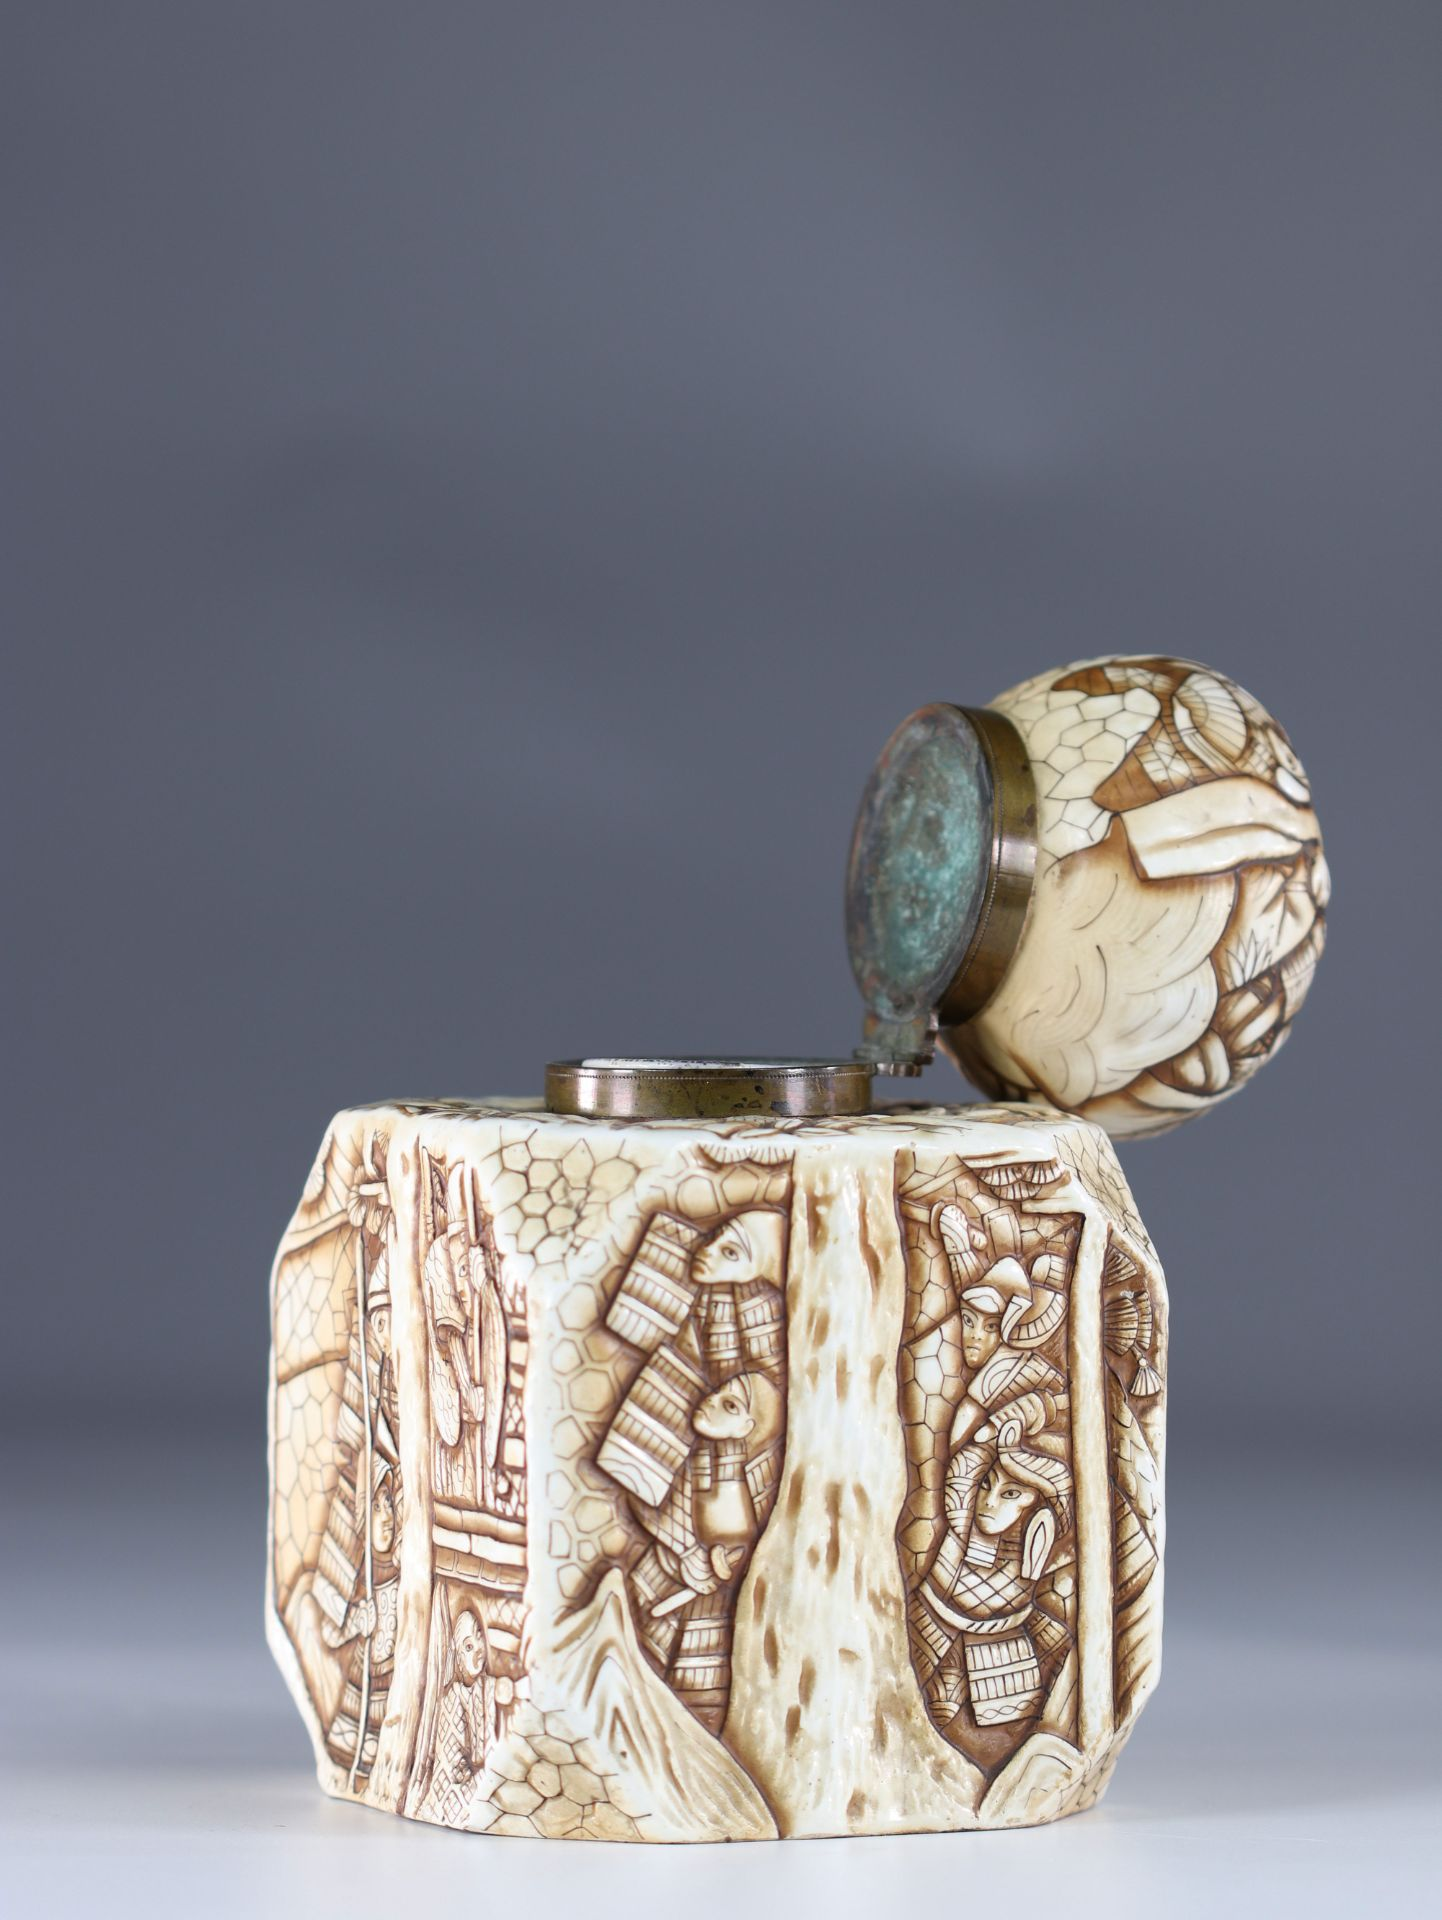 Japanese Art Deco porcelain inkwell decorated with warriors - Image 6 of 6